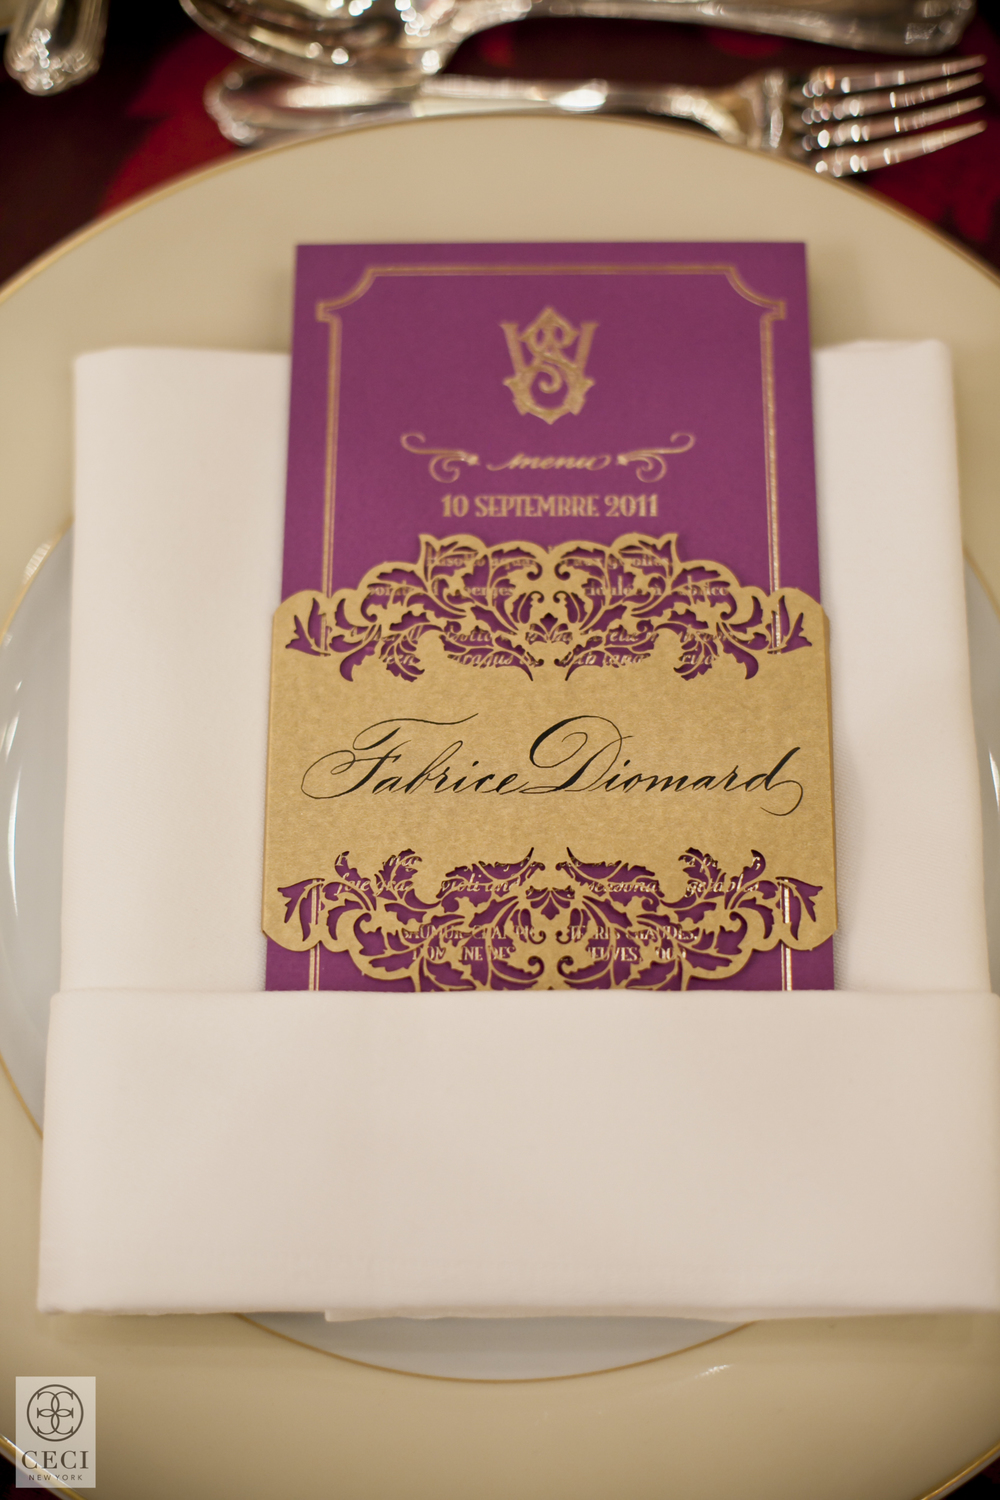 ceci_new_york_lucas_somoza_purple_regal_wediding_birthday_commitment_ceremony_invitation_logo_branding_perfume_gold_-5.jpg